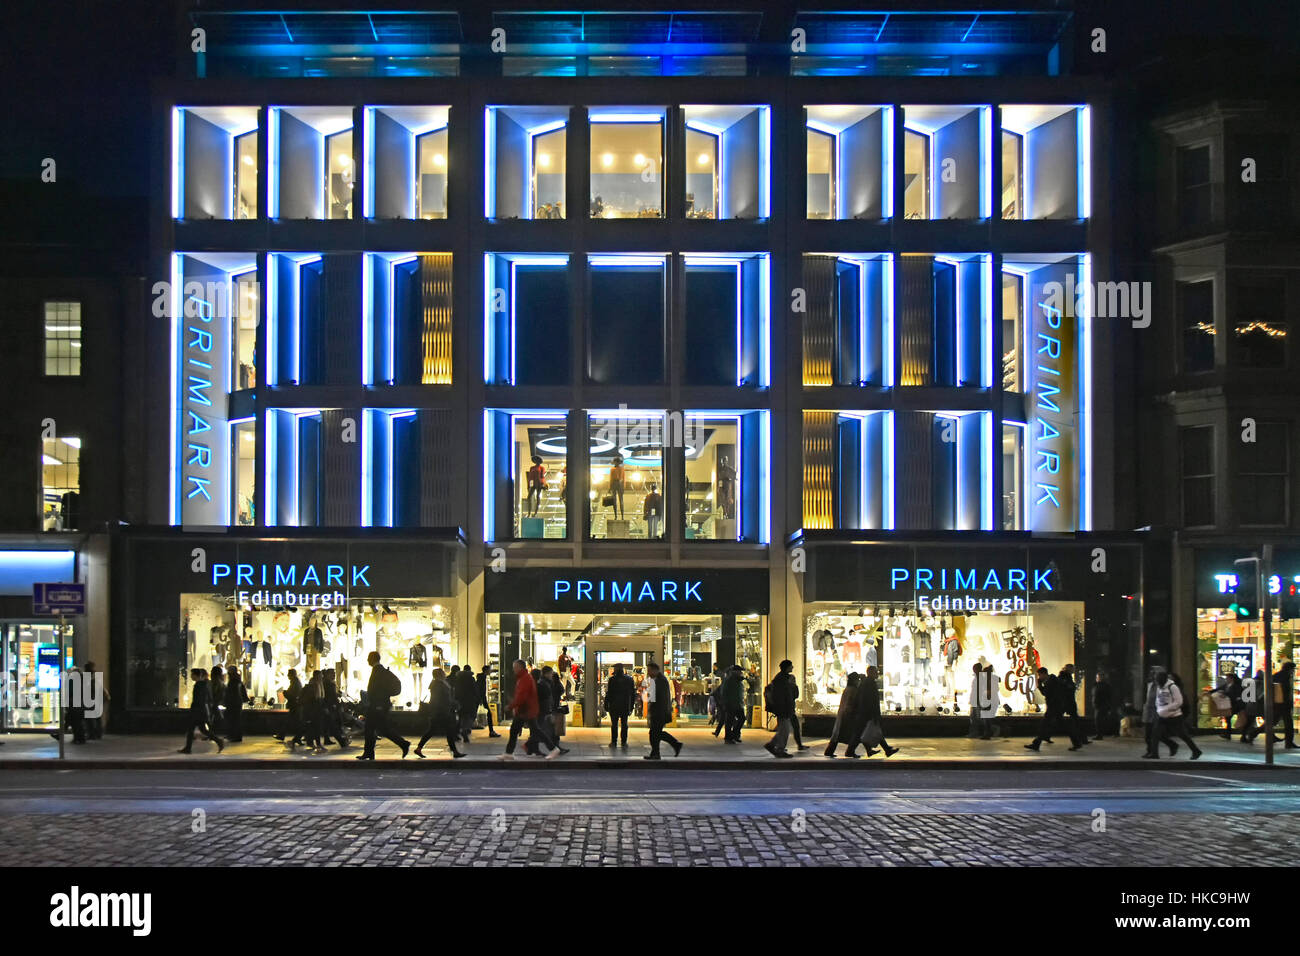 Primark retail shop Edinburgh Scotland uk city at night winter evening shopping on Princes Street (a subsidiary - Stock Image